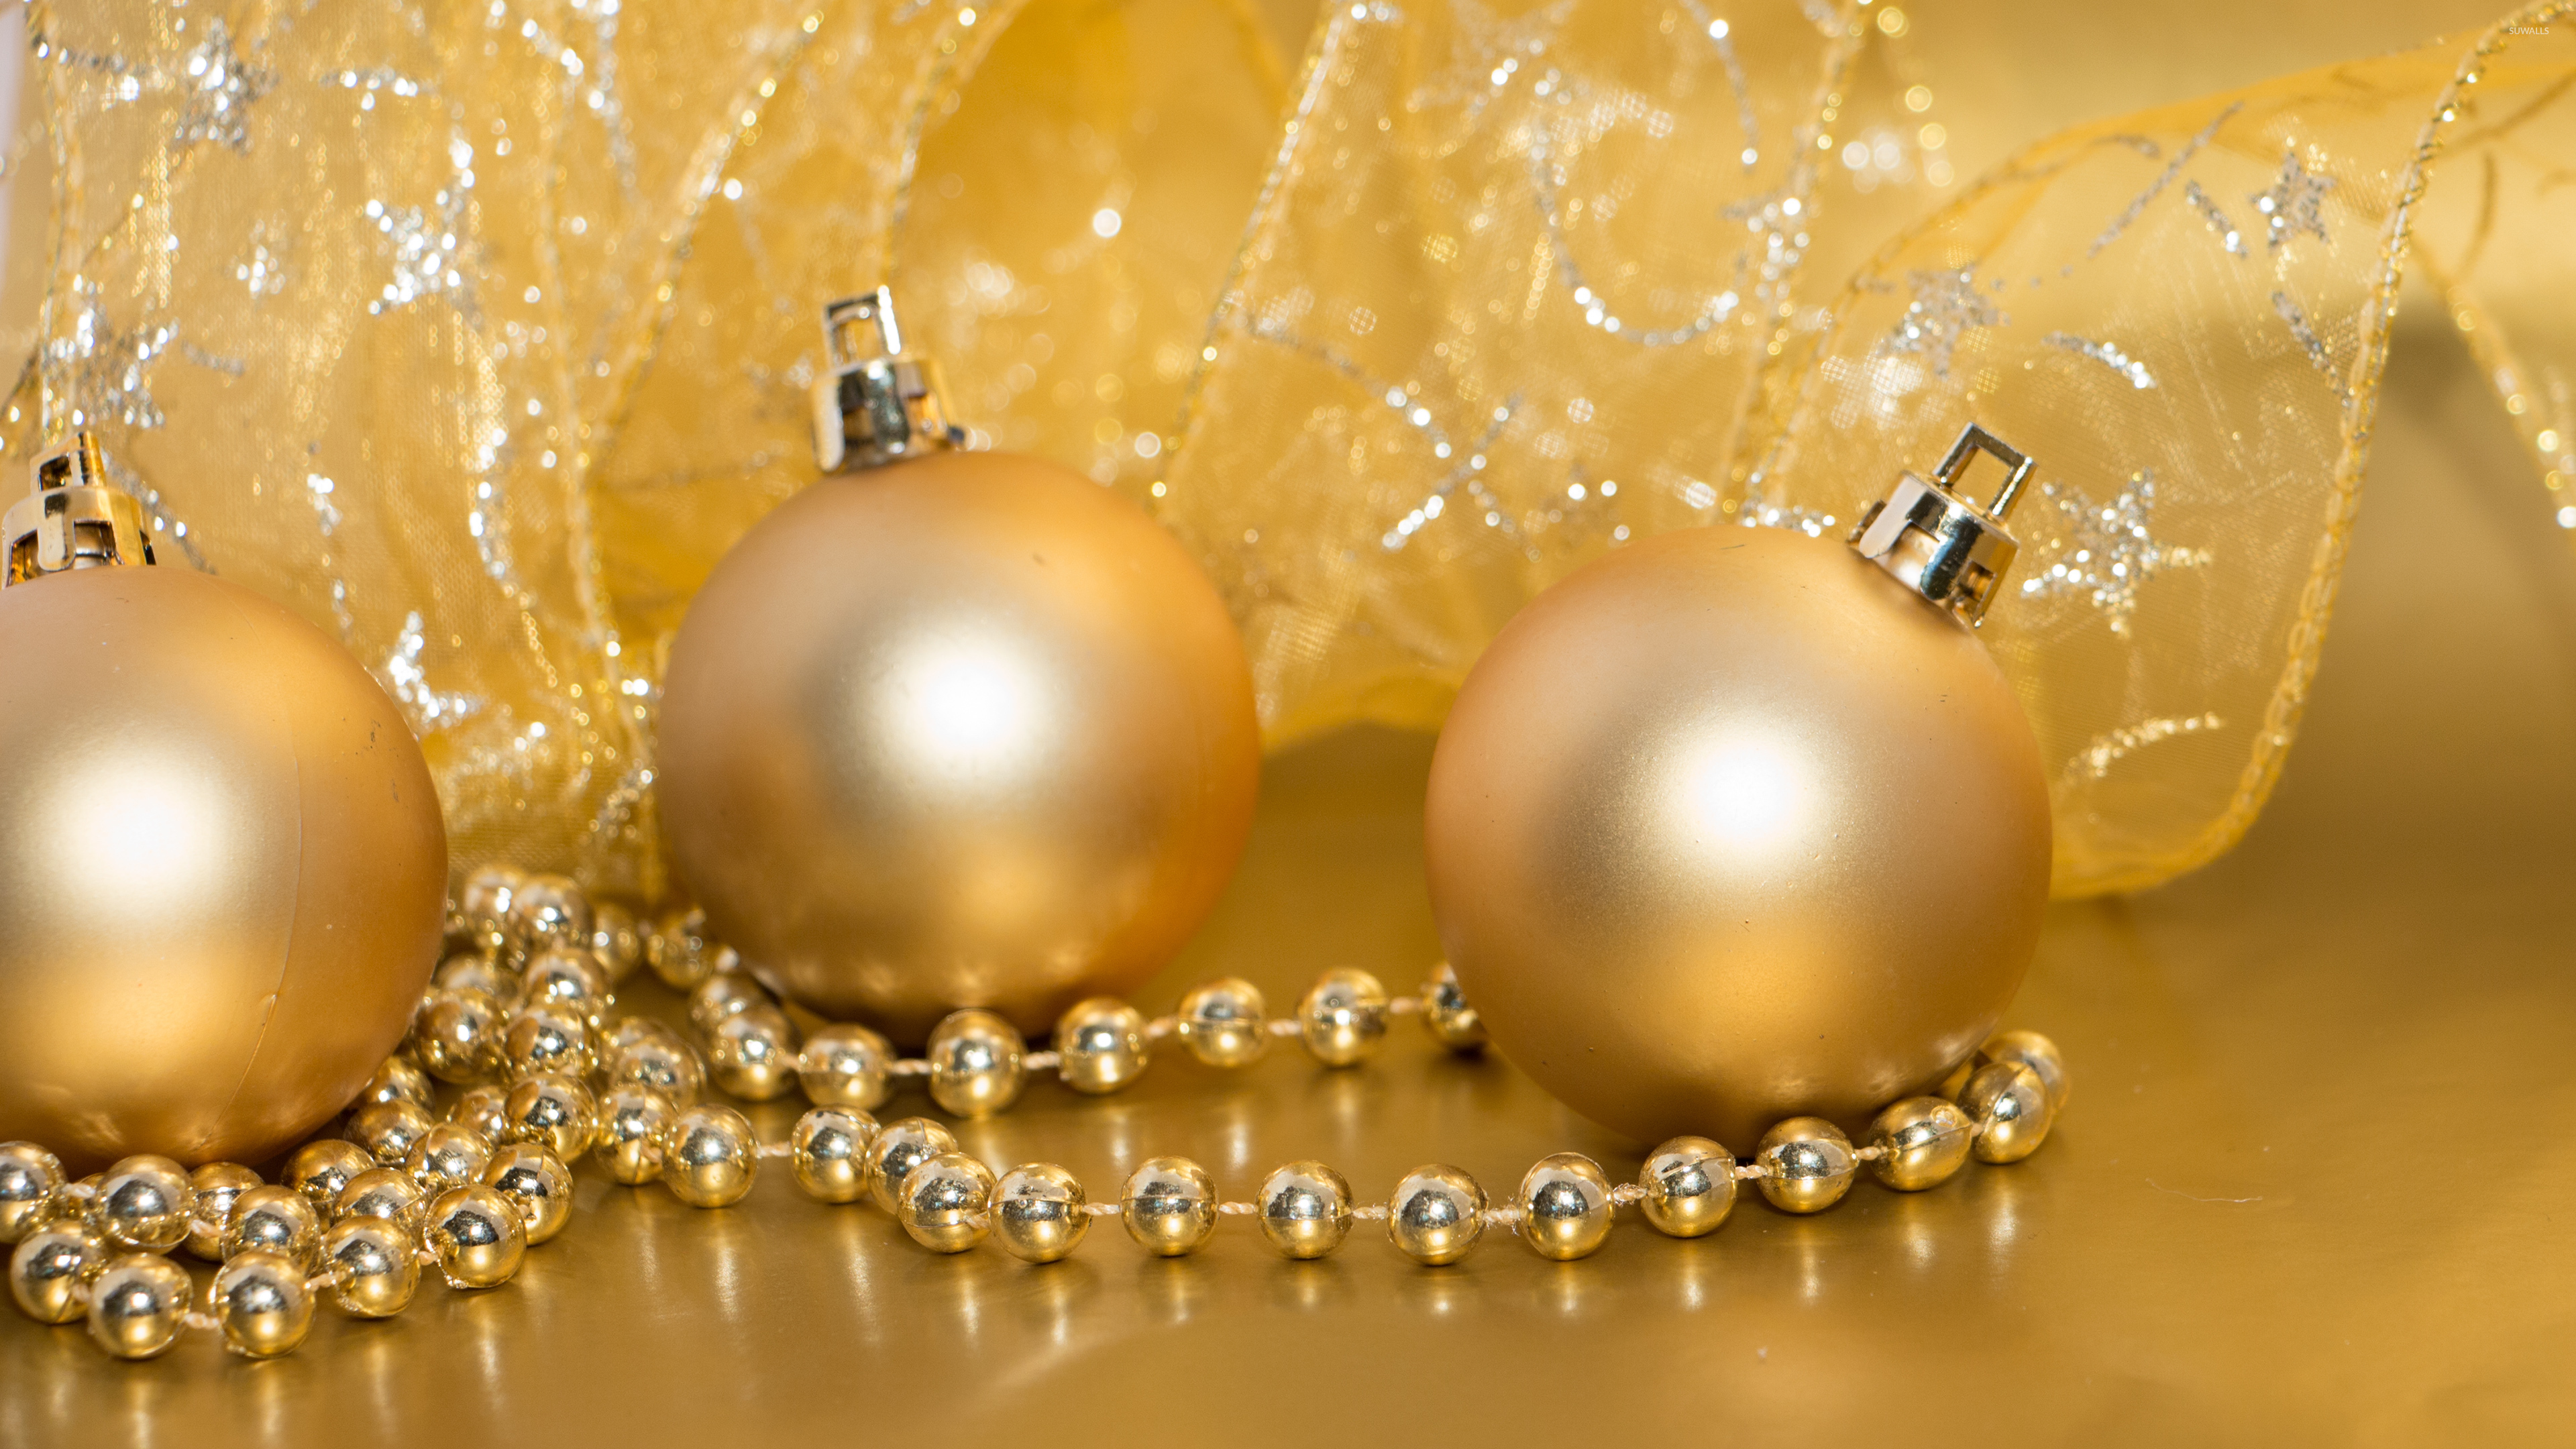 Golden Christmas decorations wallpaper - Holiday wallpapers - #51279